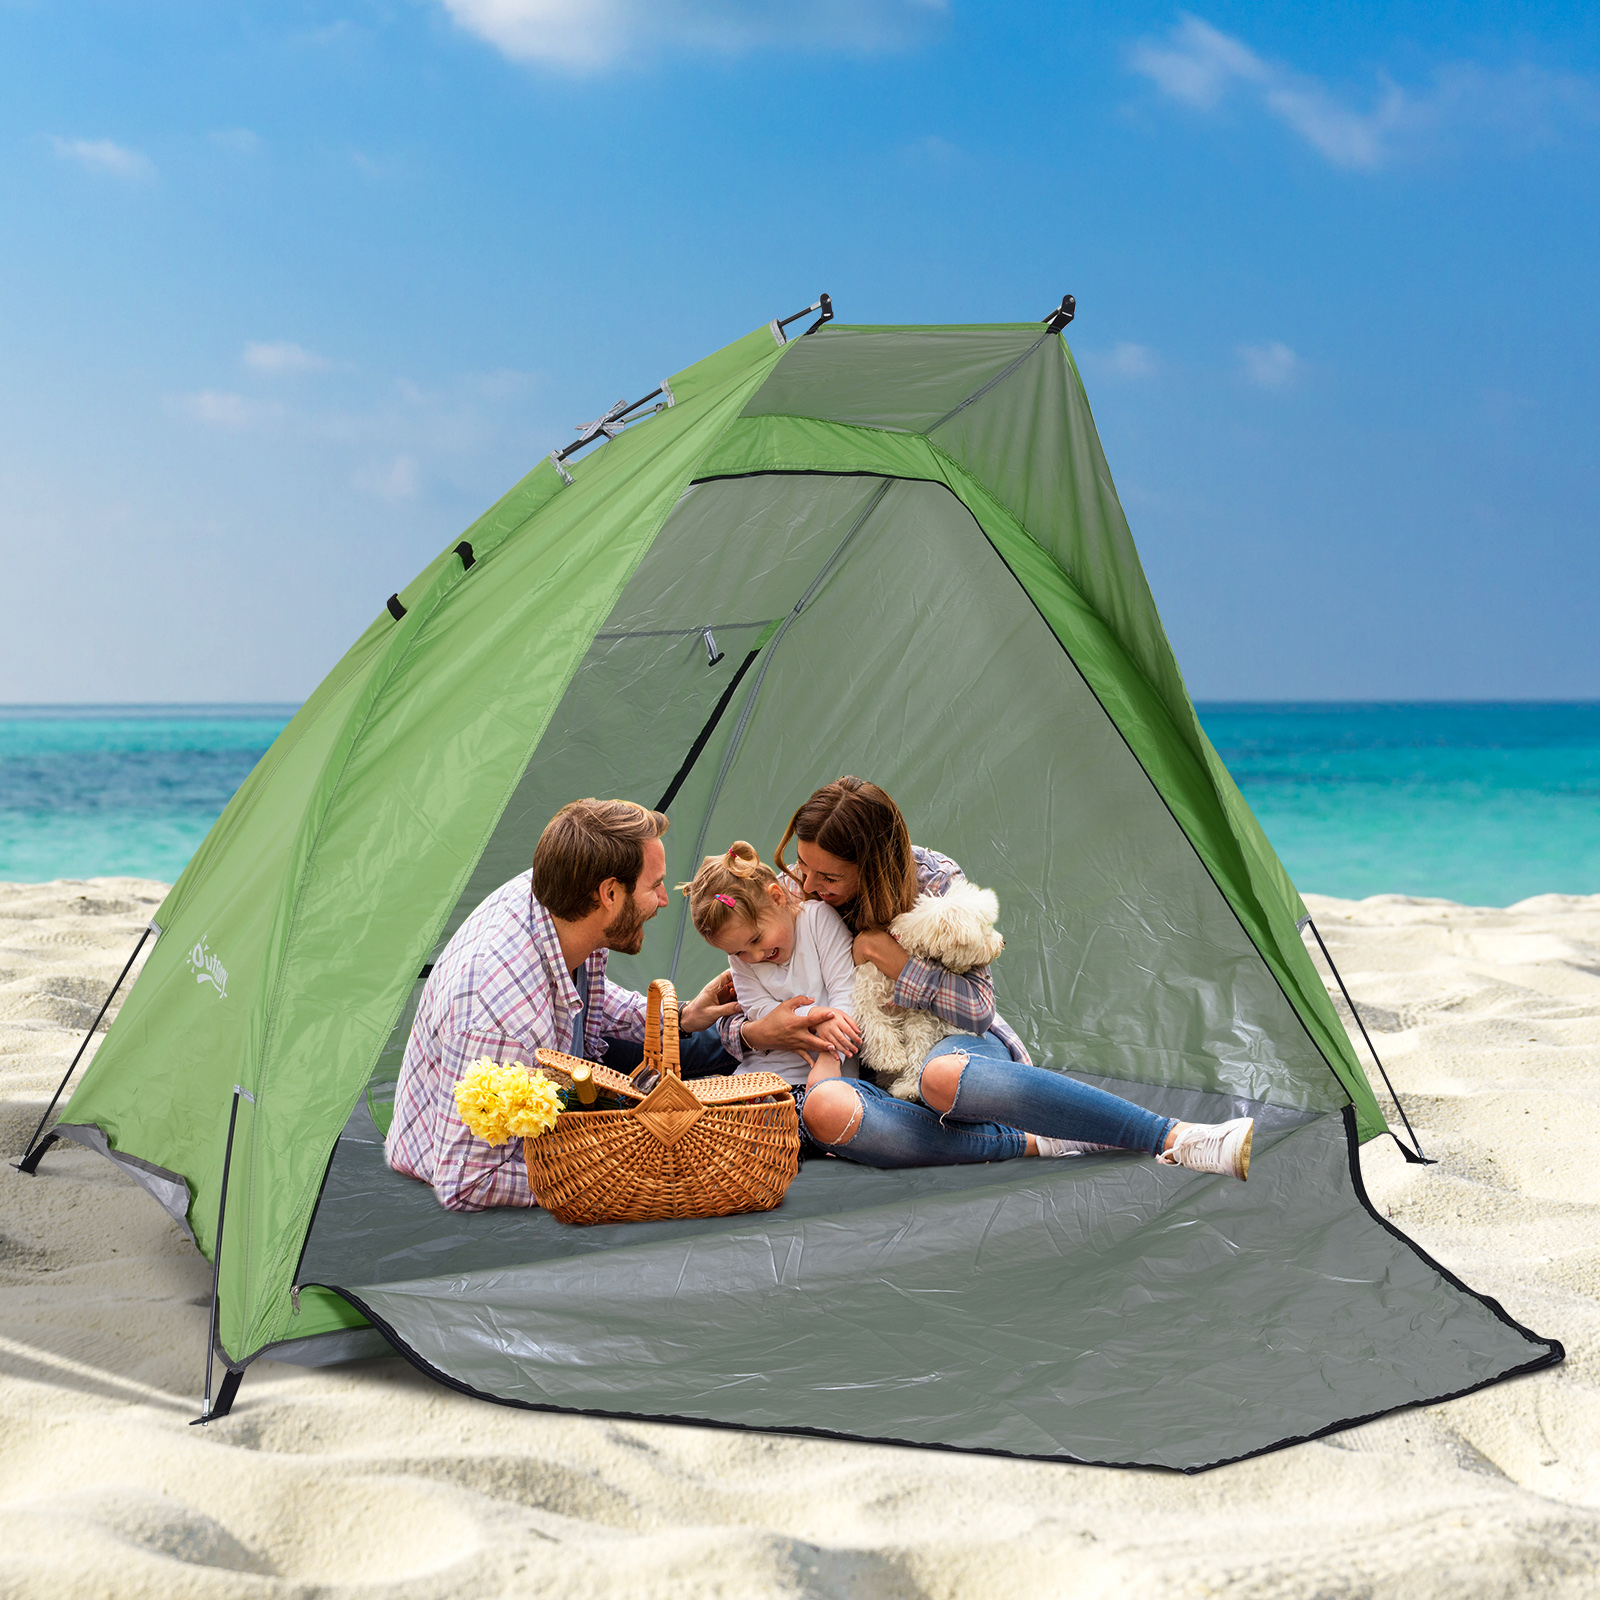 separation shoes 9d89c 45991 Details about Portable Beach Tent Kid Playing Sun Shelter Tent Anti-UV w/  Bag & Door Outdoor